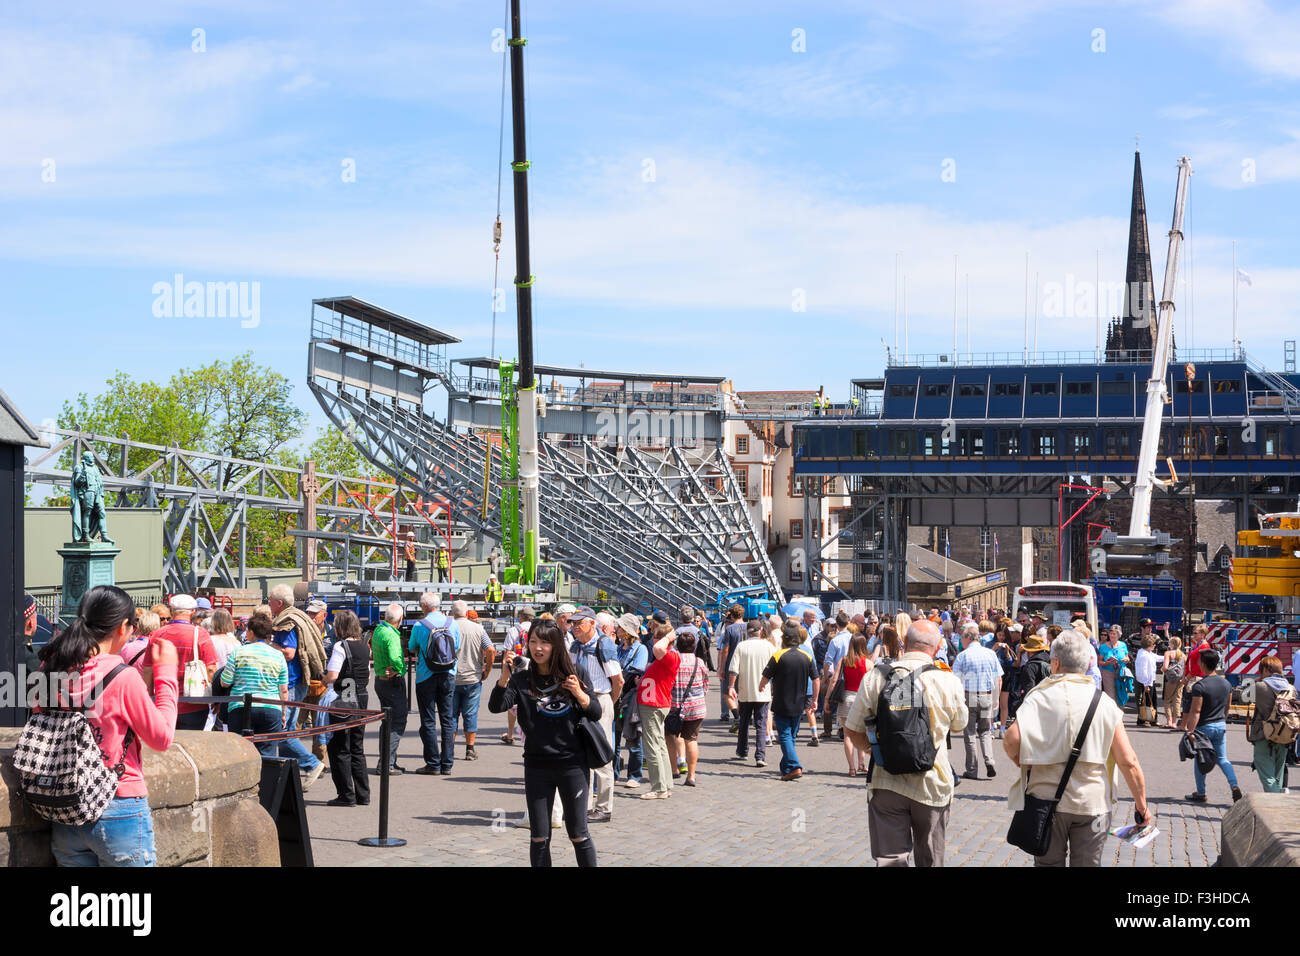 EDINBURGH, SCOTLAND - JUNE 11, 2015: Preparations for Edinburgh Military Tattoo festival Stock Photo